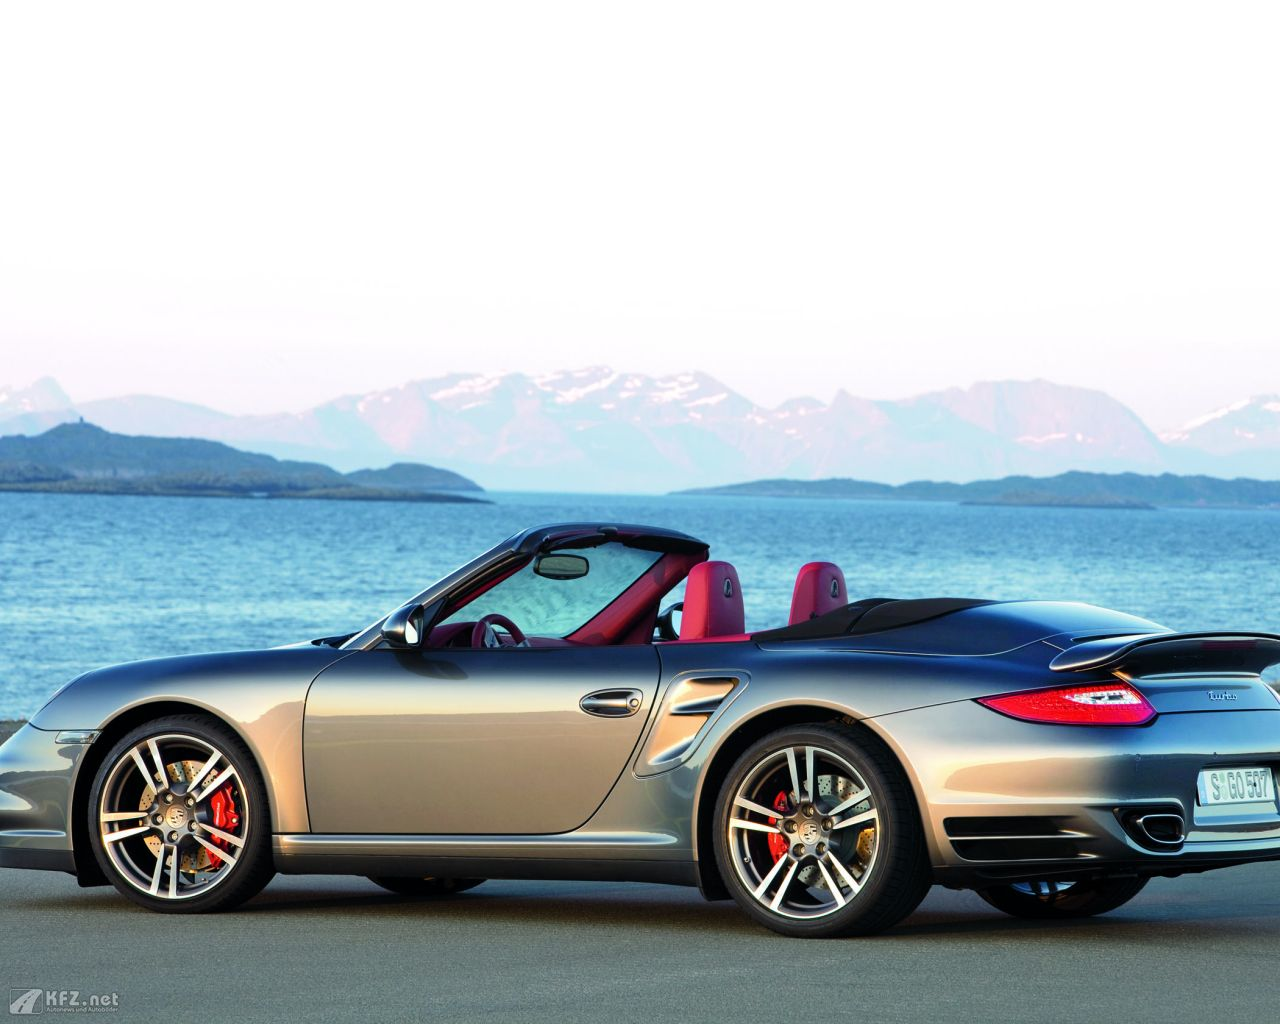 porsche-911-turbo-coupe-1280x1024-6